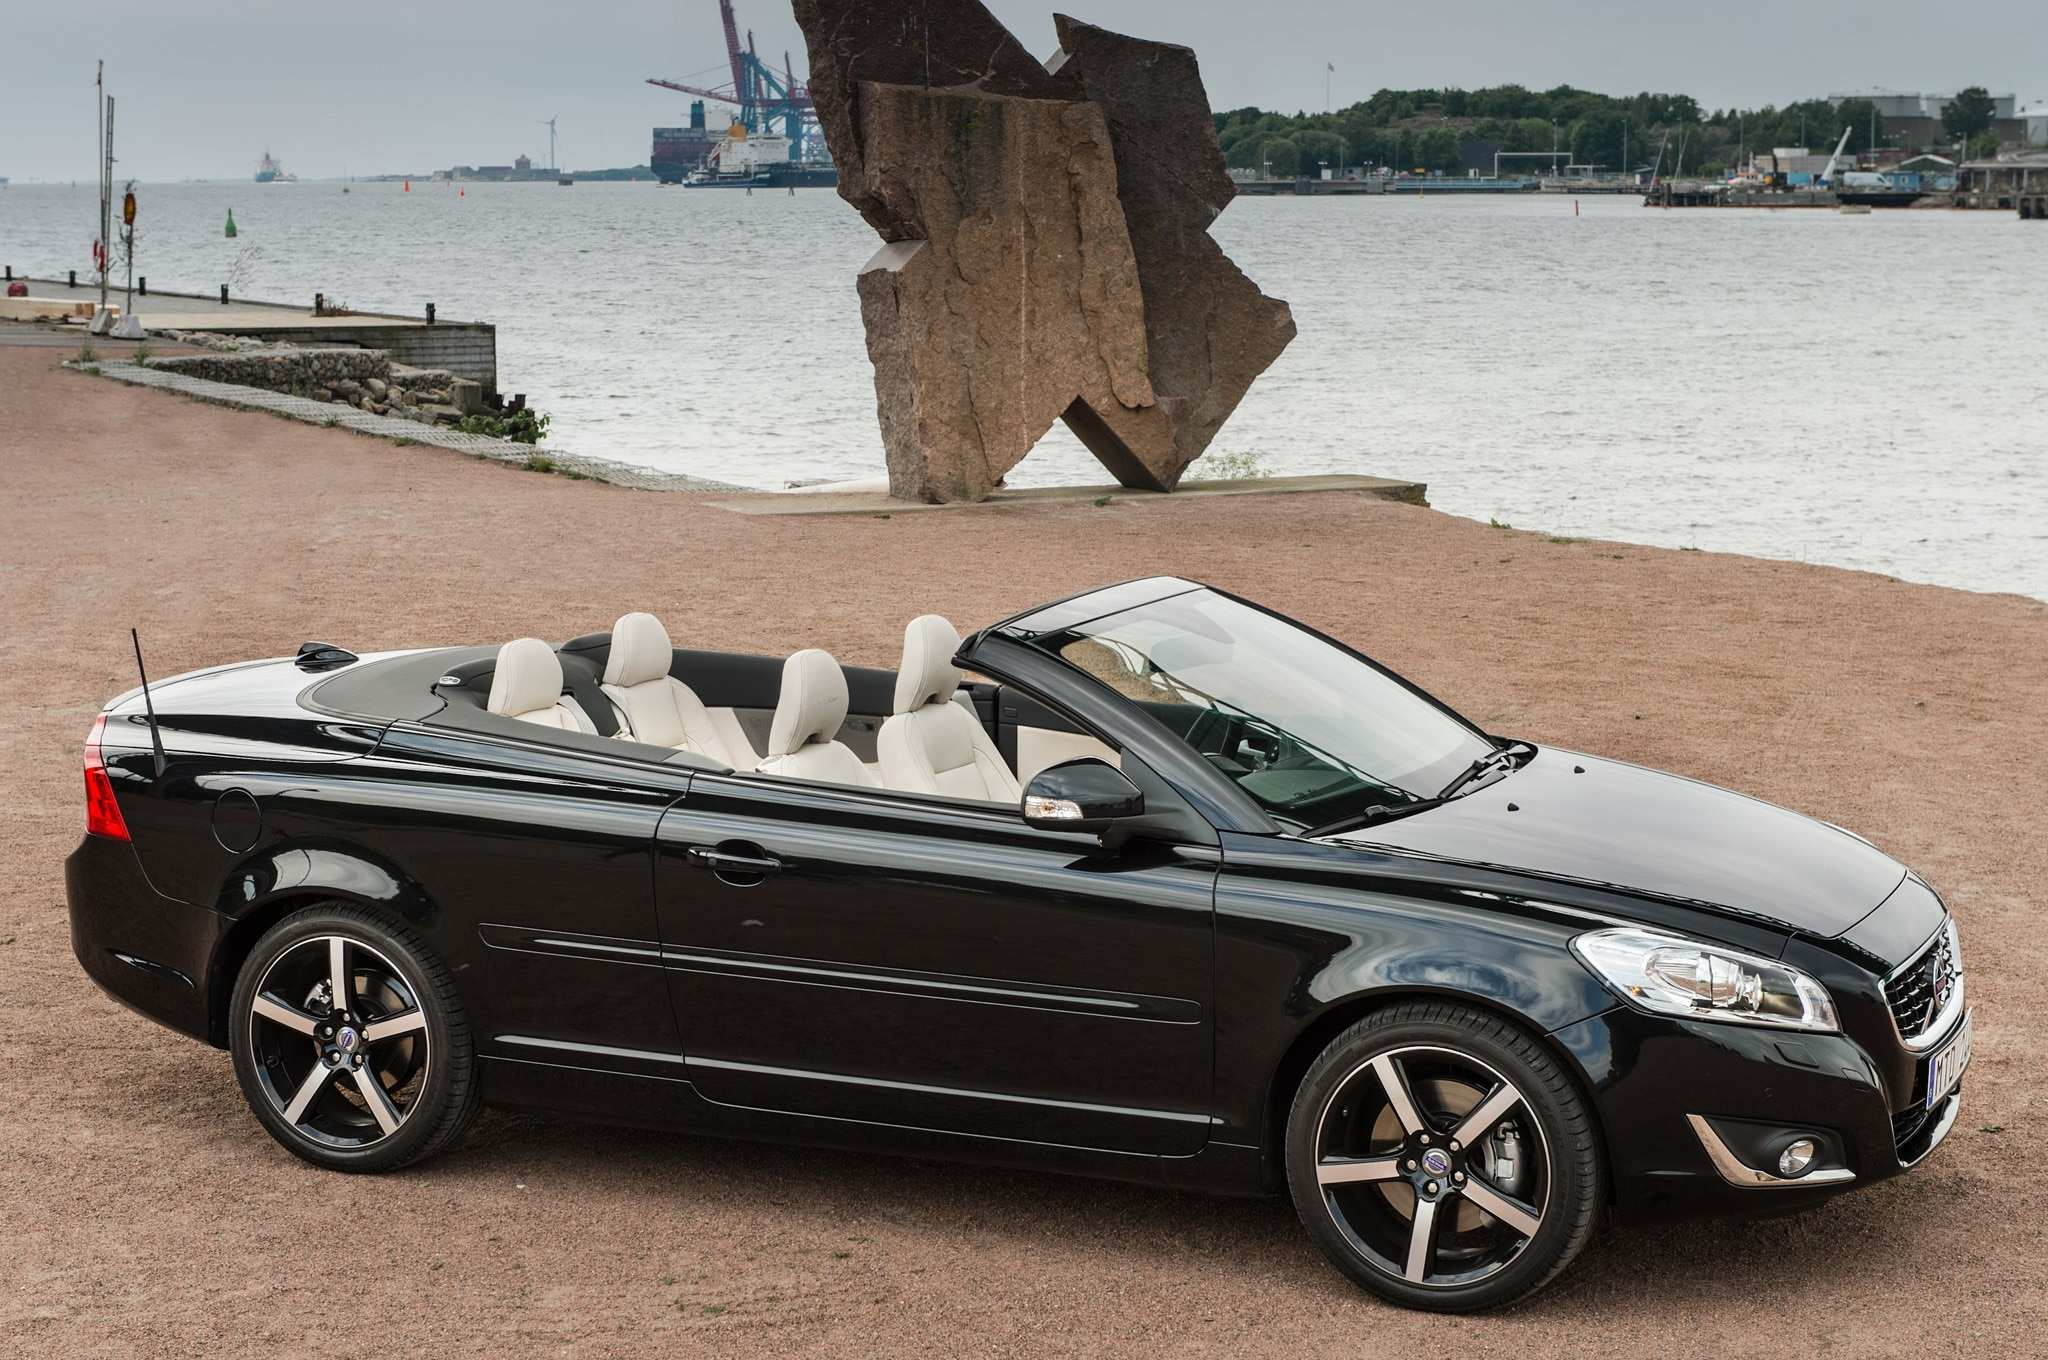 80 Best Review 2020 Volvo Convertible Spesification with 2020 Volvo Convertible